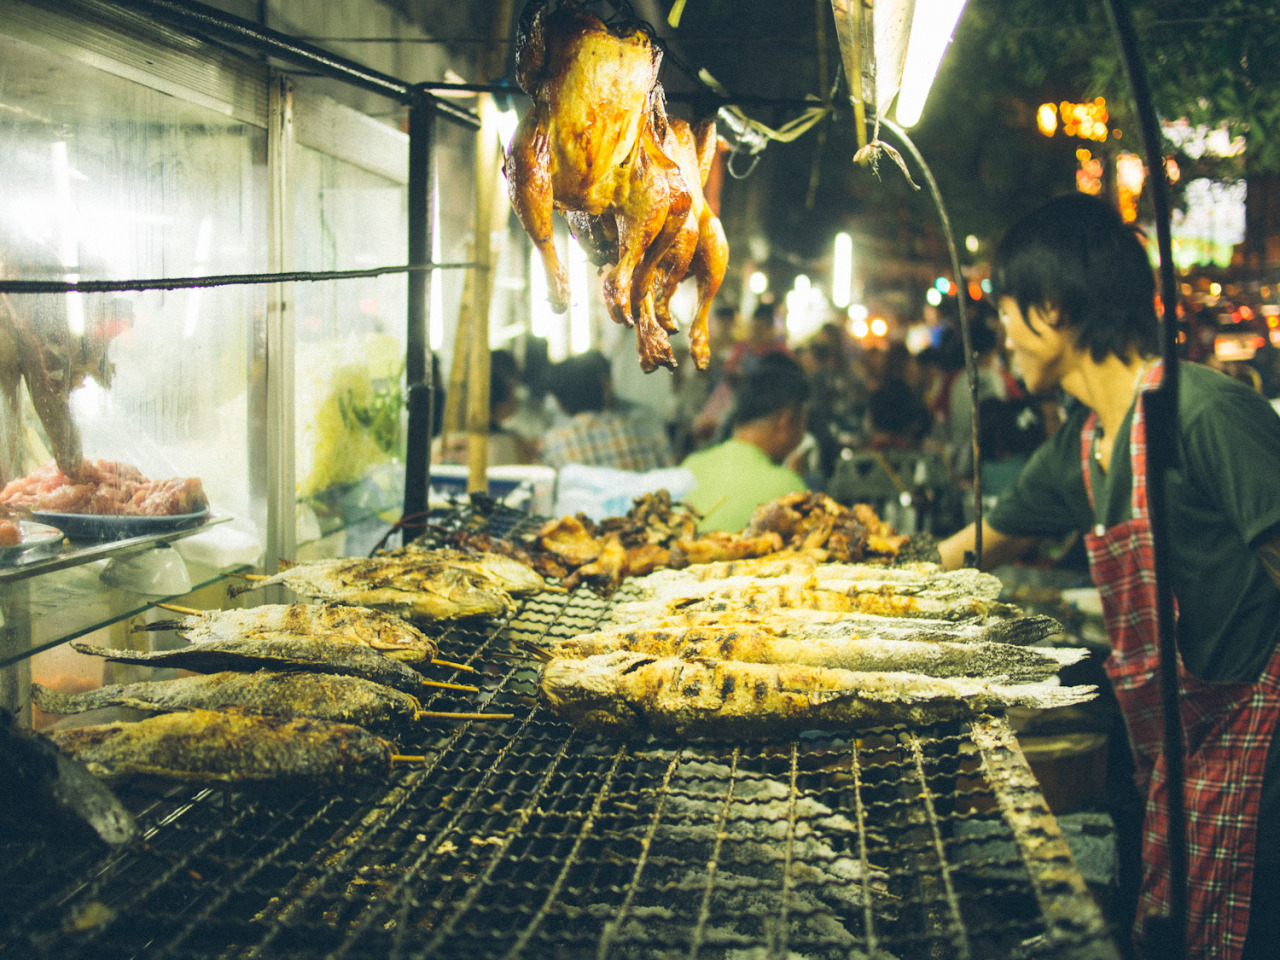 Grilled food on the streets of Bangkok